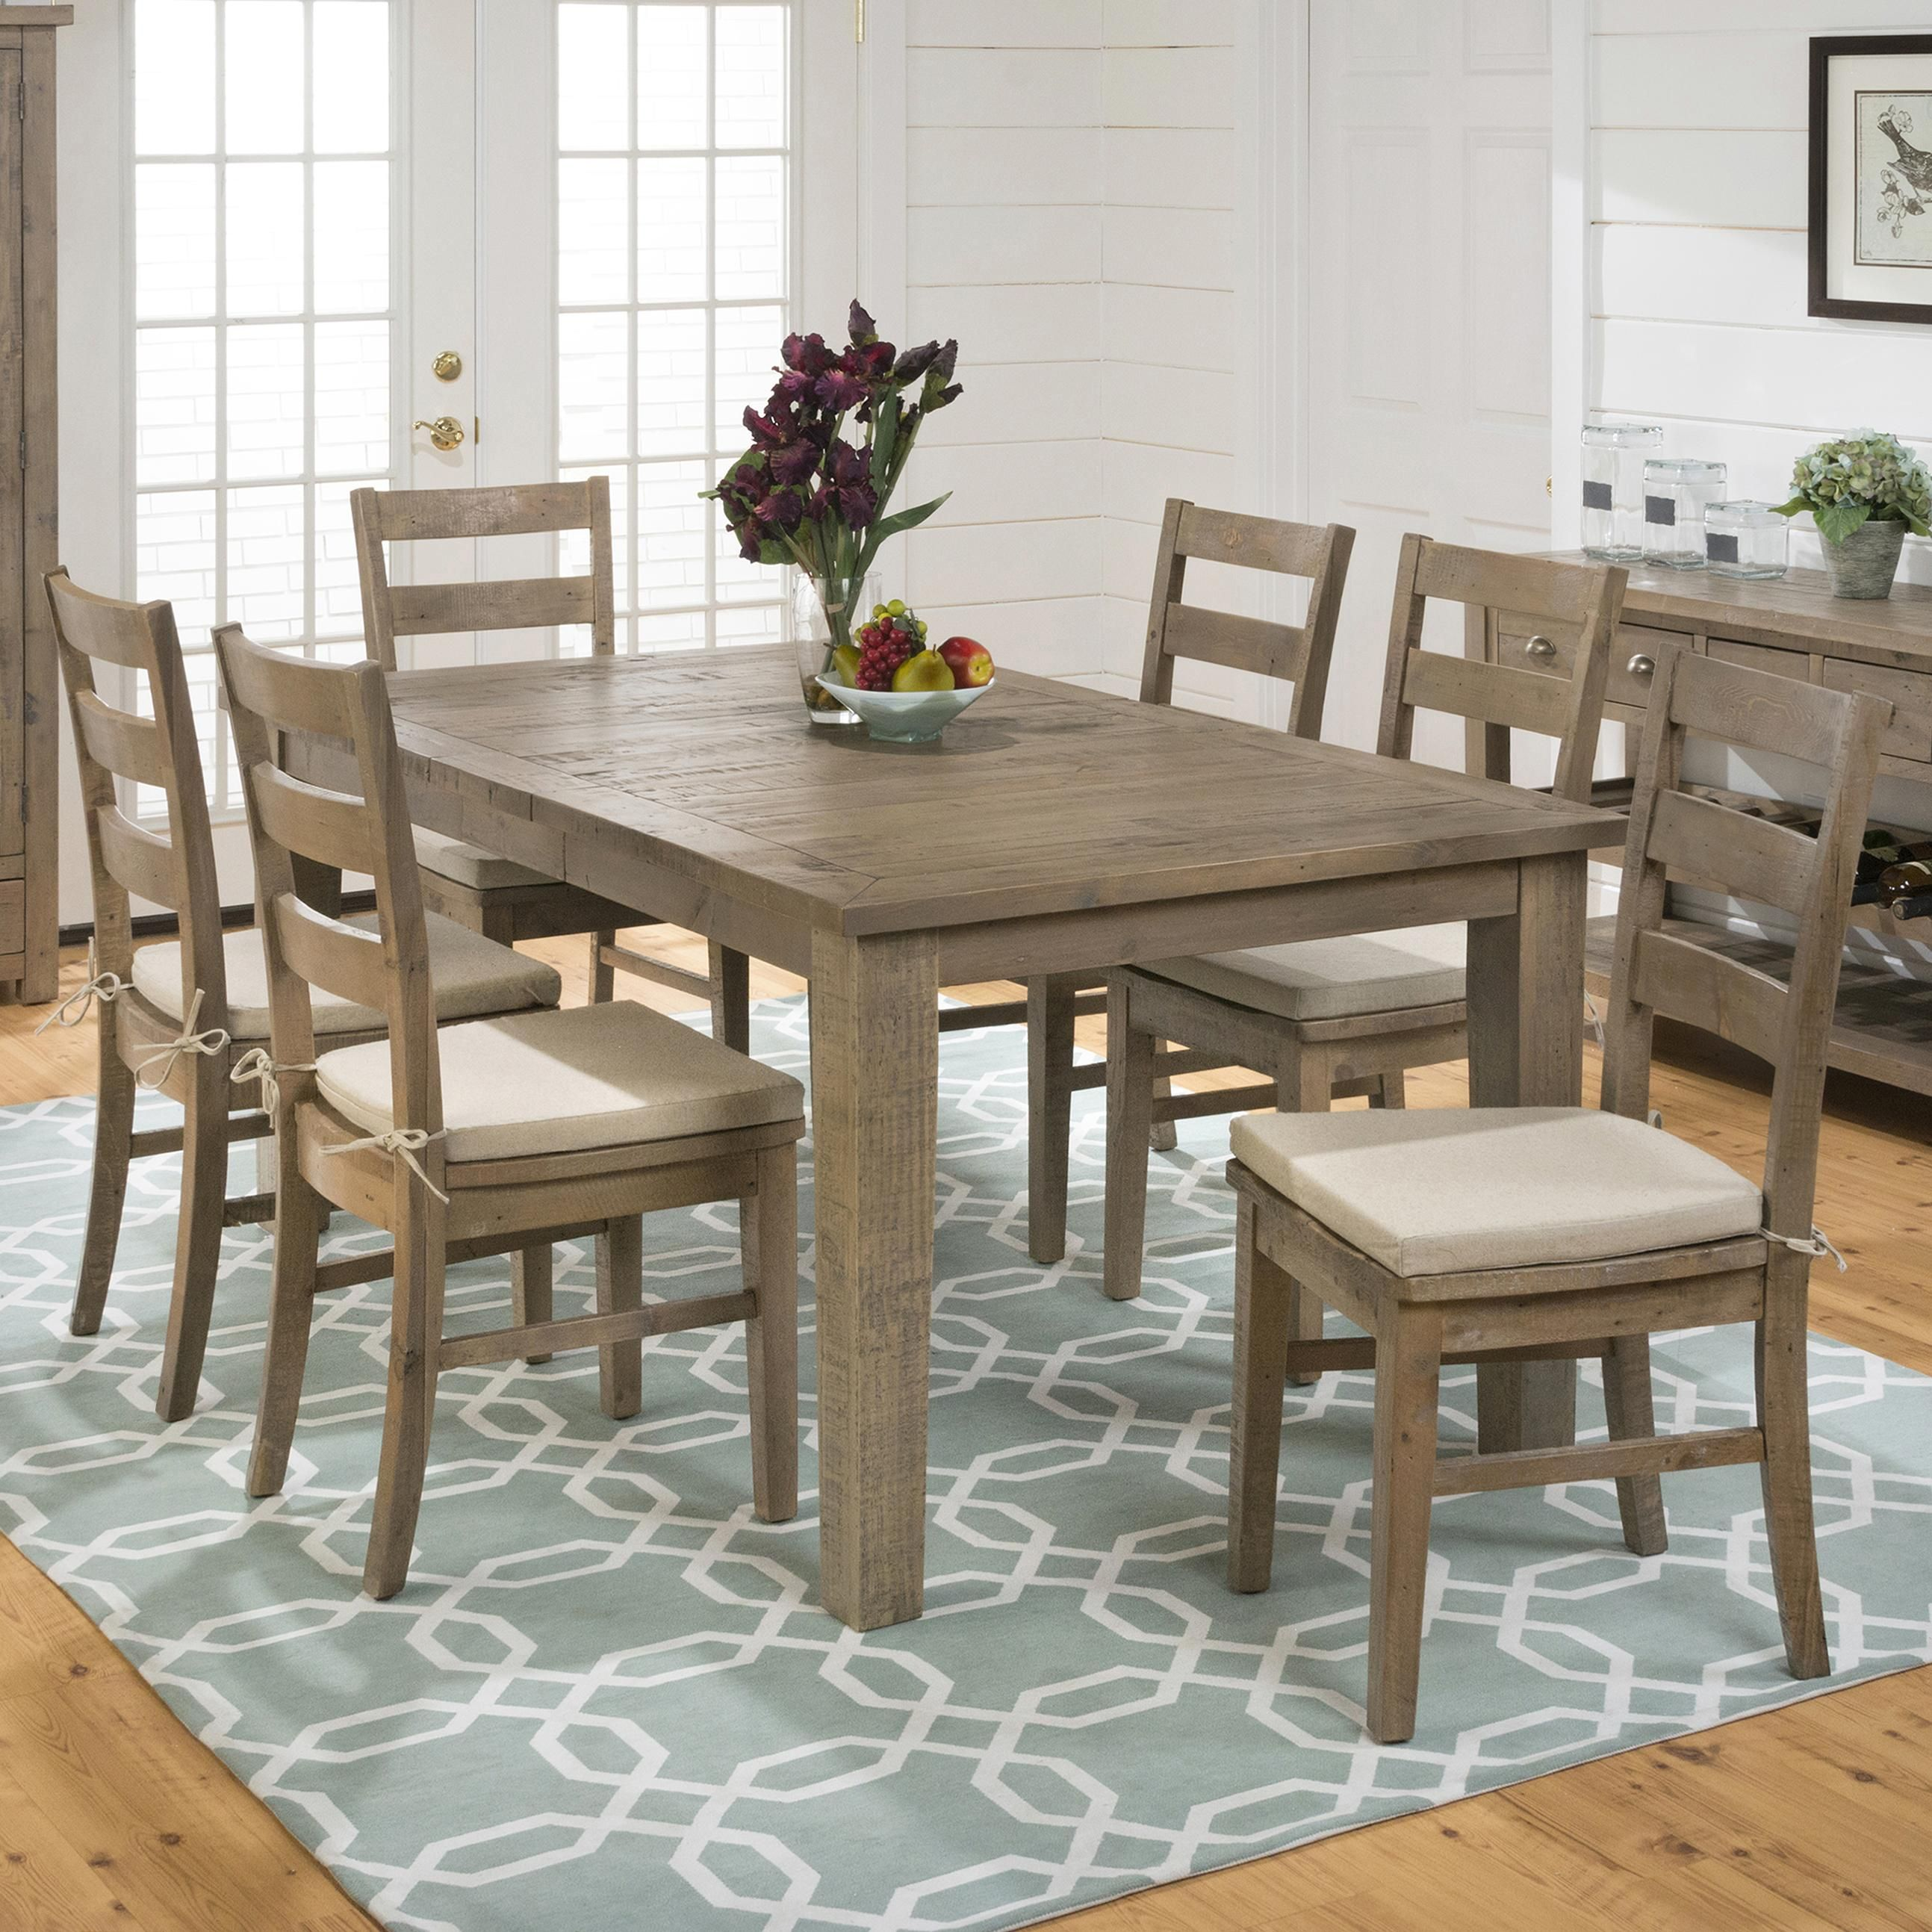 Slater Mill Transitional Espresso Dining Room Set Counter Height